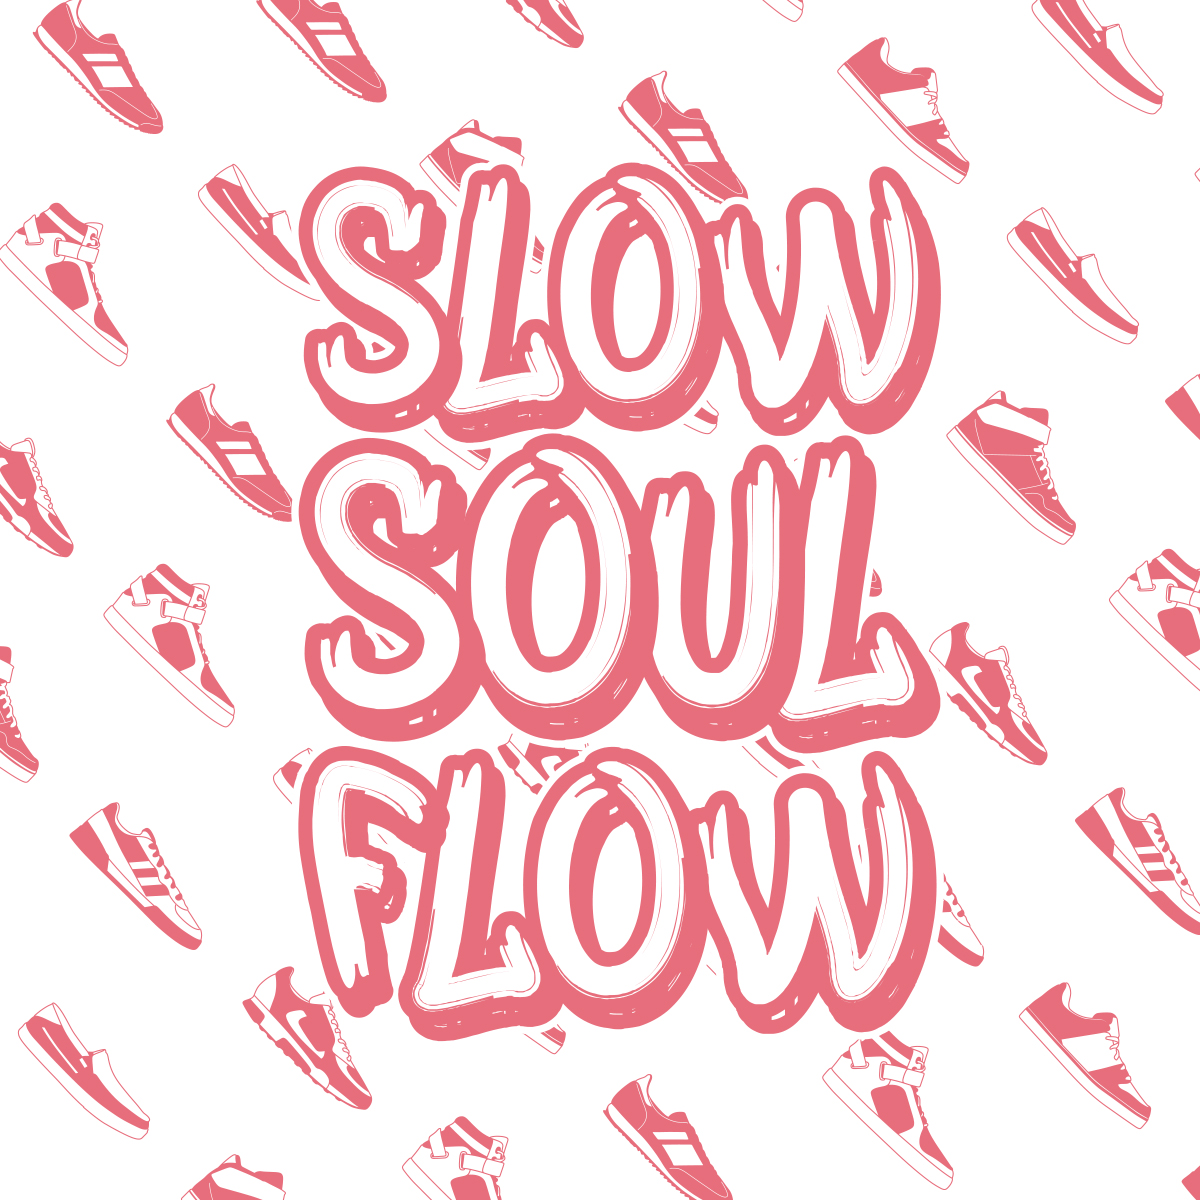 Shoes/SLOW SOUL FLOW EP 12""